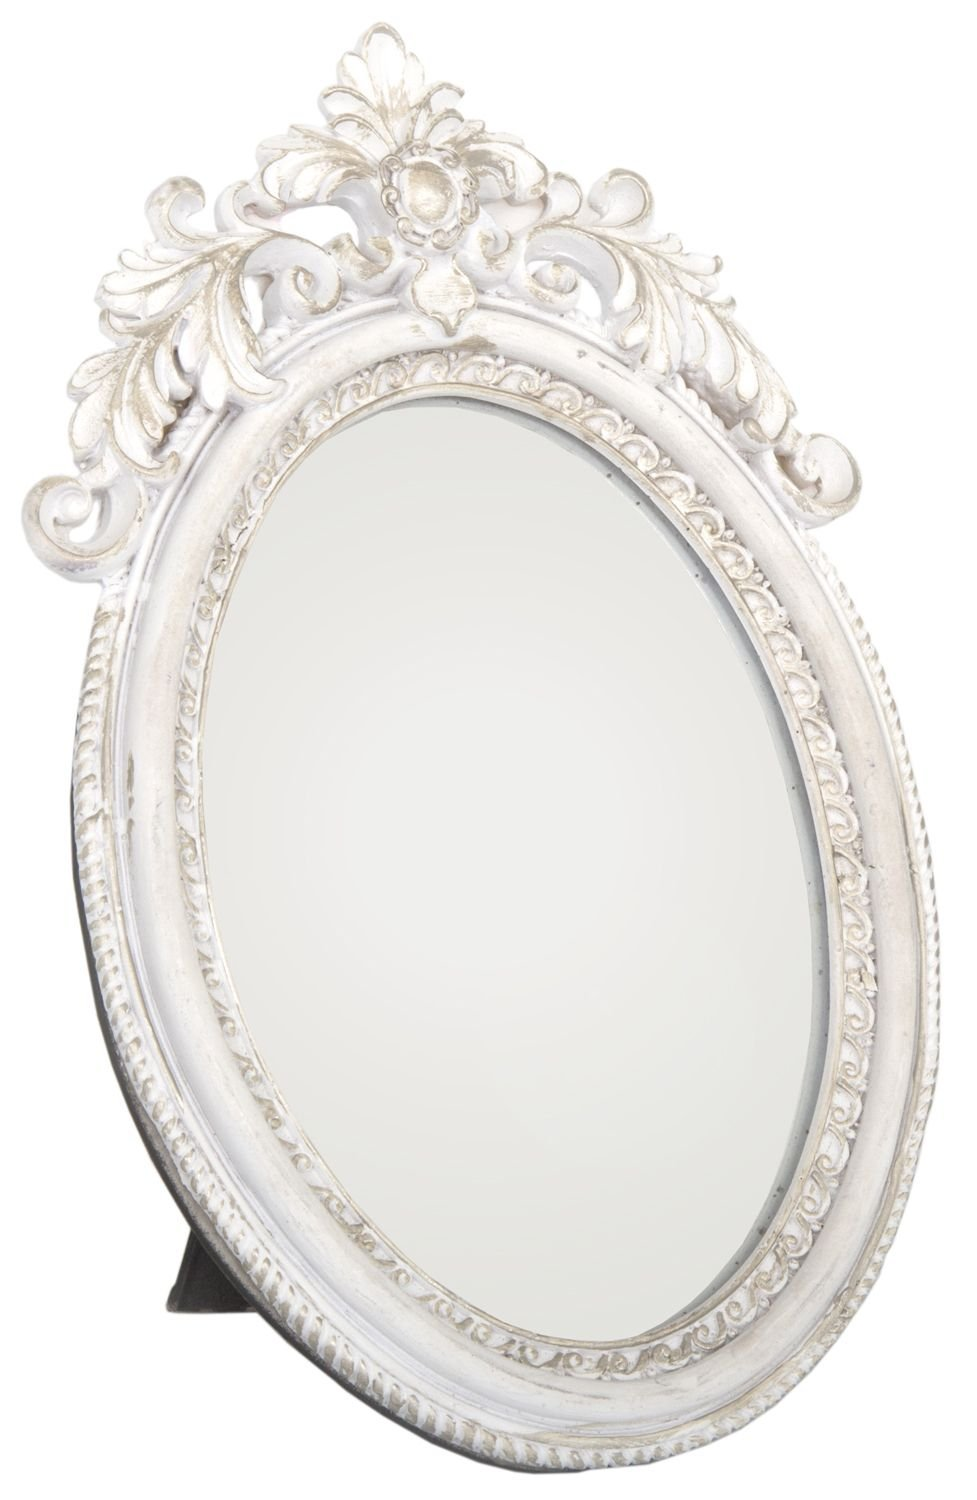 Antique Style Ornate Oval Freestanding Dressing Table Mirror White And Gold  Frame 24Cm X 16Cm: Amazon.co.uk: Kitchen U0026 Home